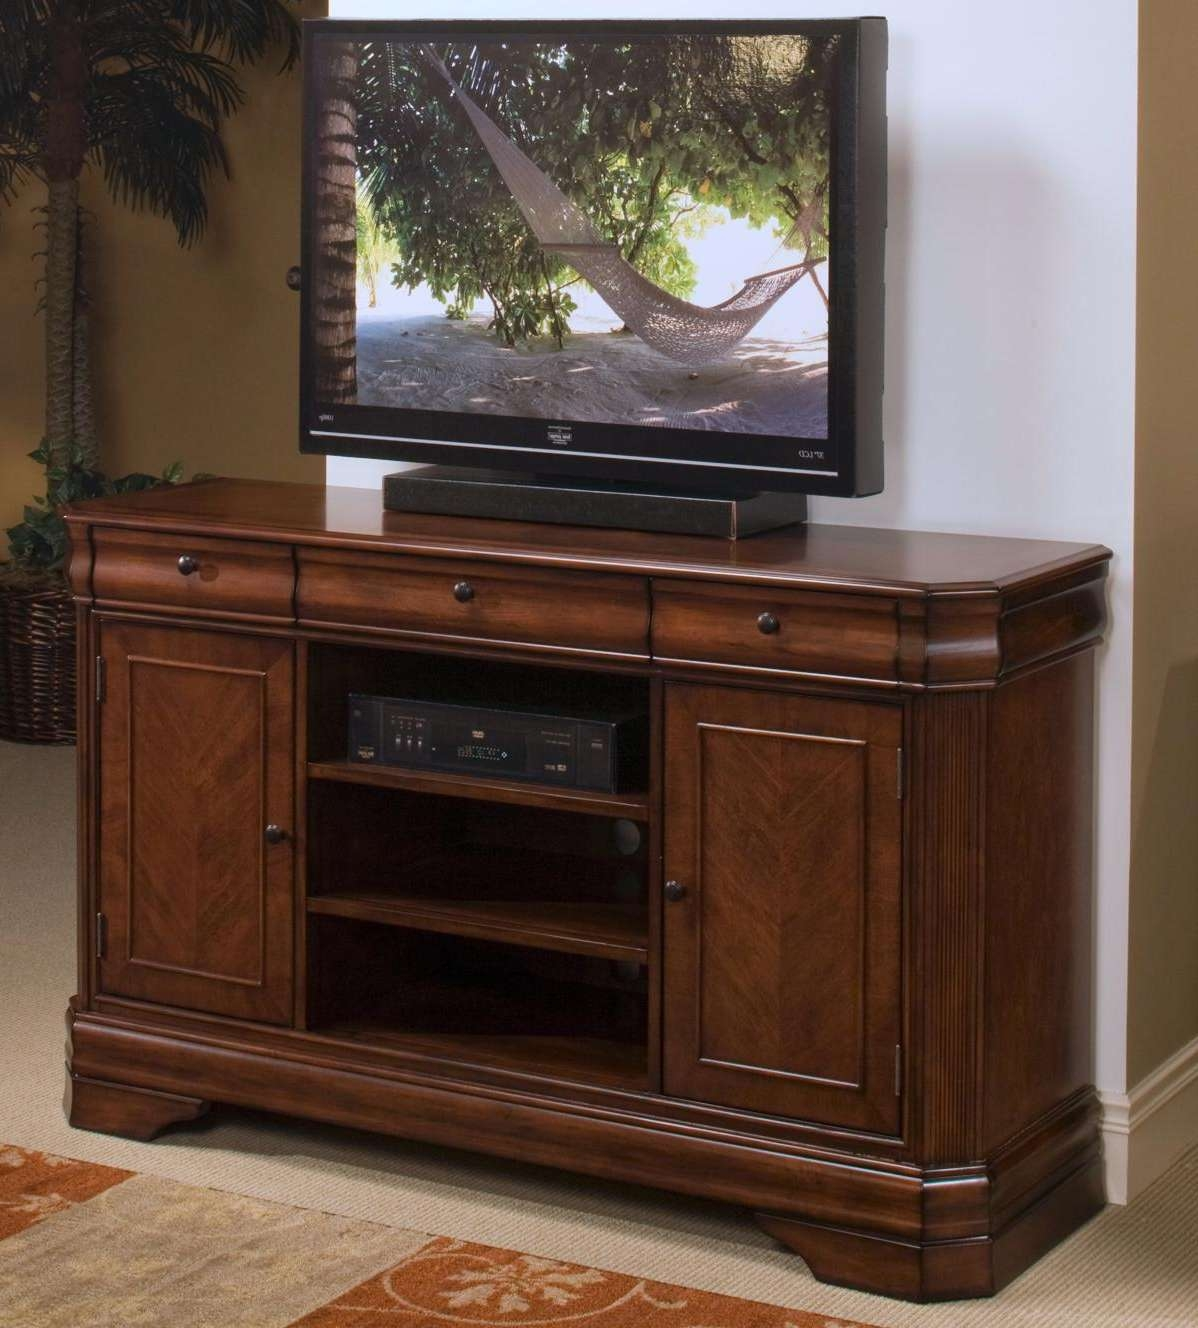 New Classic Sheridan 10 005 10 Tv Entertainment Console | Great With Regard To Classic Tv Stands (View 9 of 15)